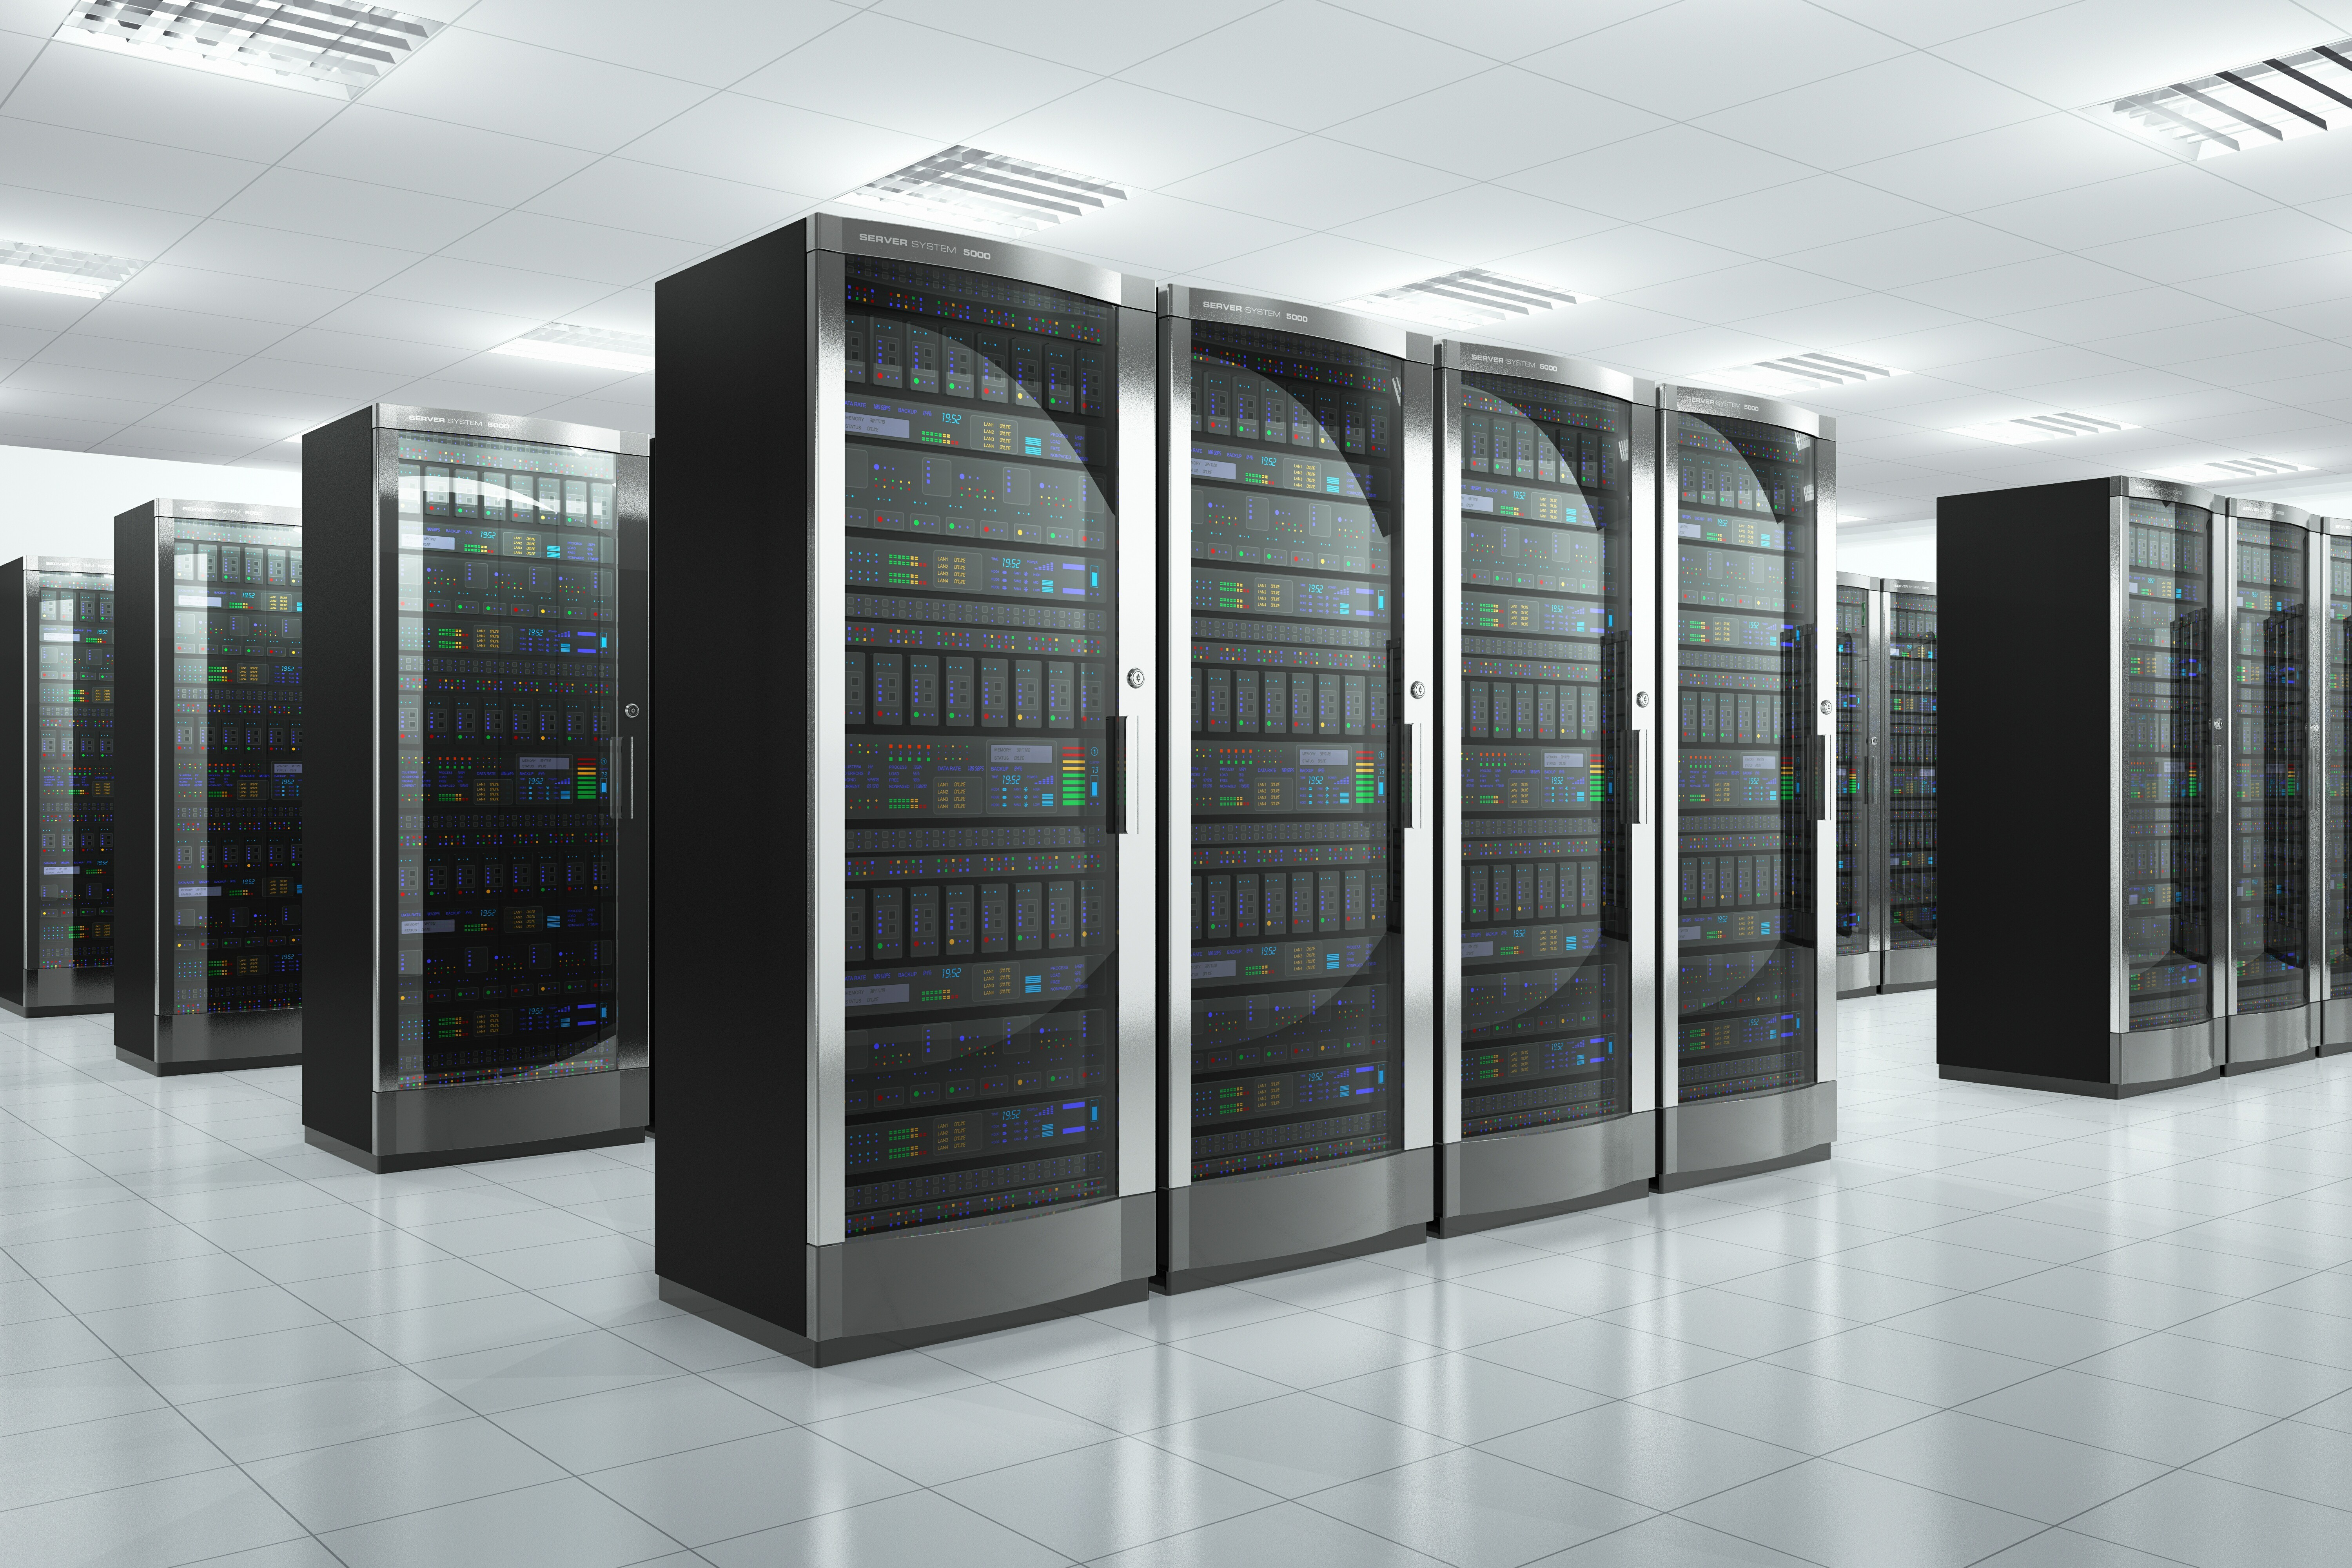 bigstock Network servers in datacenter 45477460 Breathing New Life into the Mainframe